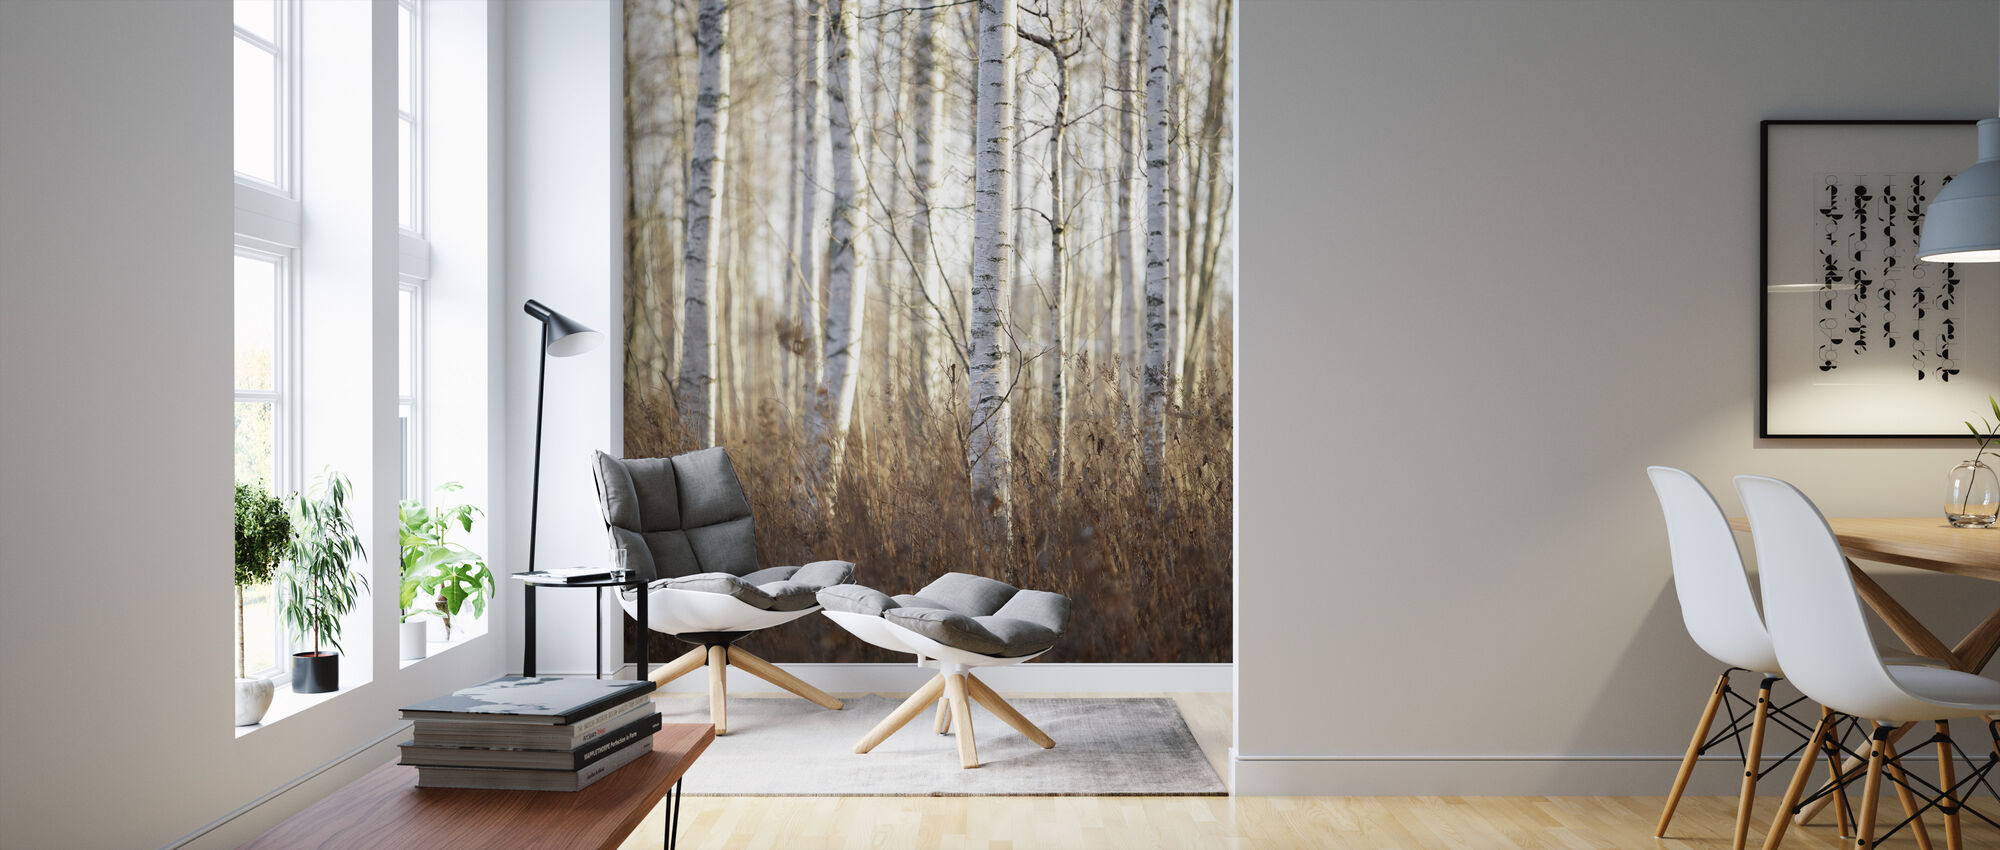 Birch Forest in Dalarna, Sweden, Europe - Wallpaper - Living Room